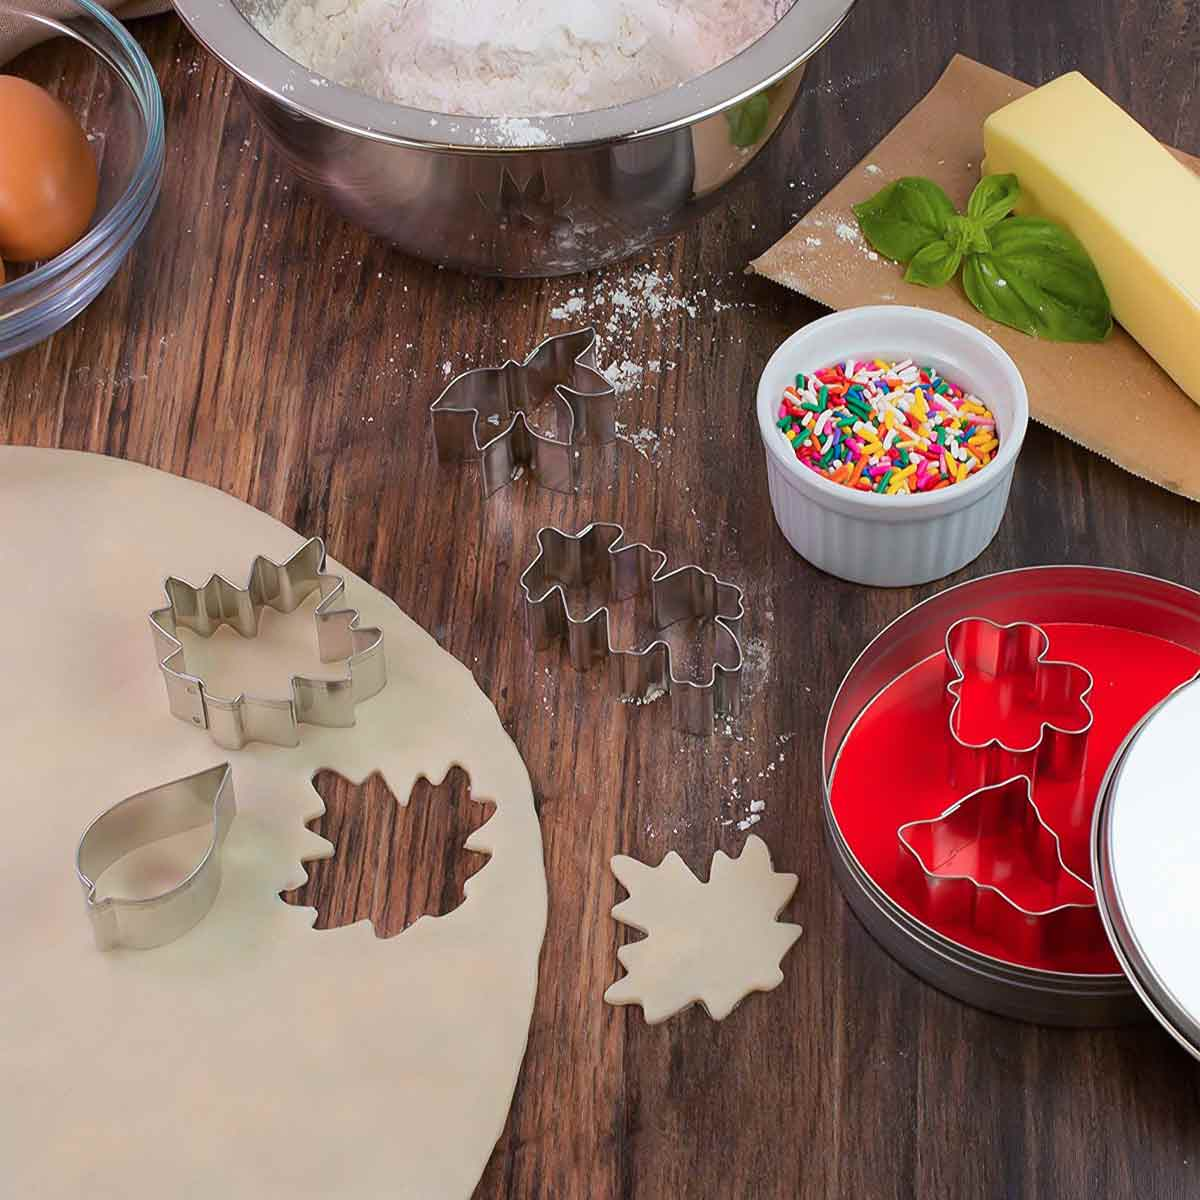 Leaf Shape Cookie Cutters on table with dough and sprinkles.